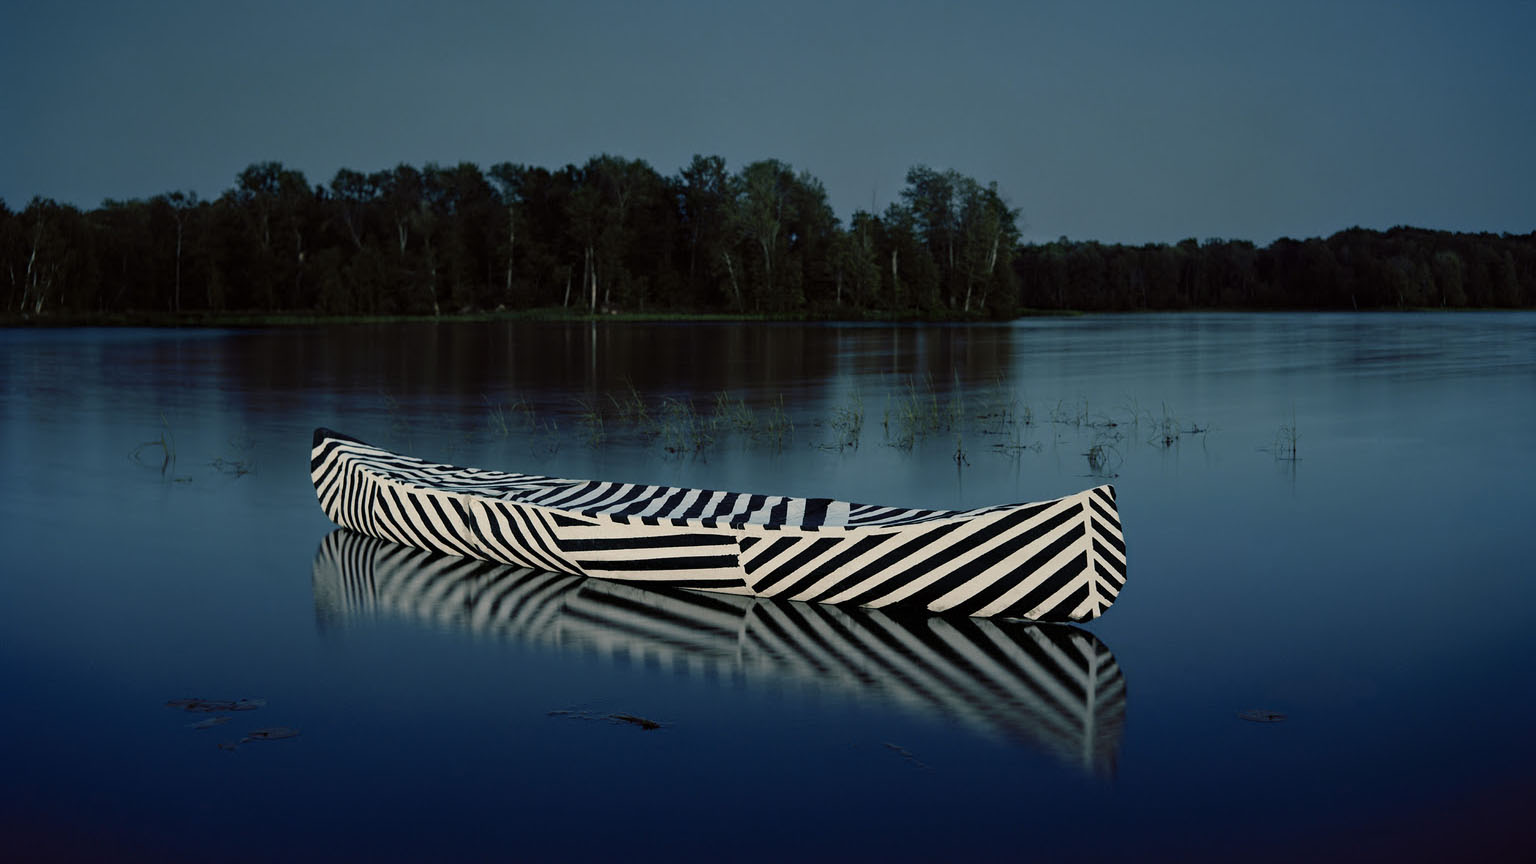 """A photograph by Carrie Schneider included in the MOCA Tucson show """"Dazzled: OMD, Memphis Design & Beyond""""."""